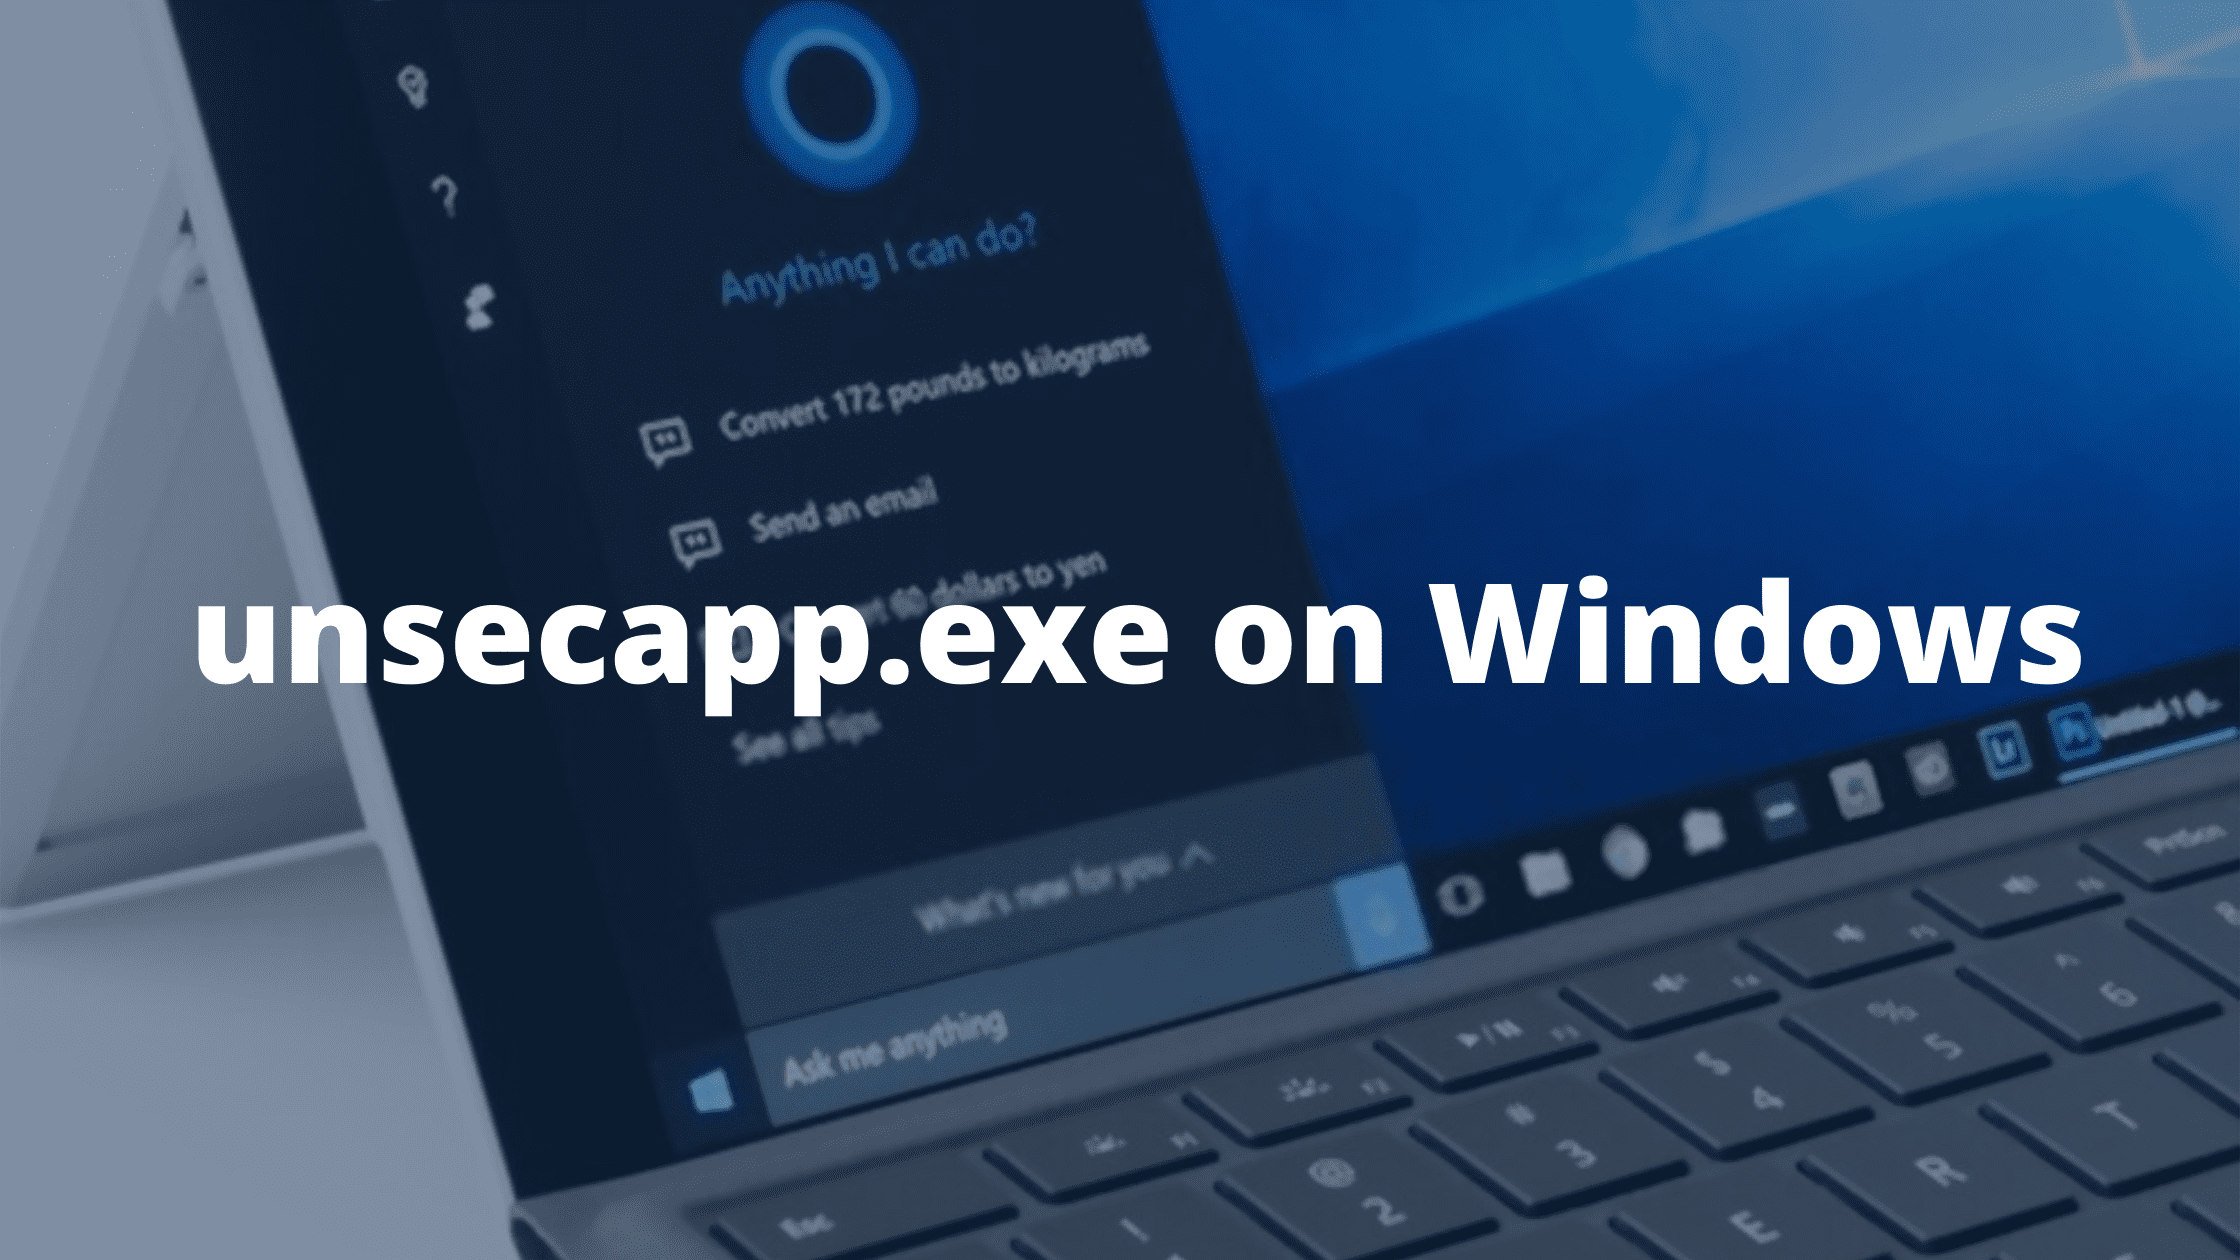 unsecapp.exe on Windows